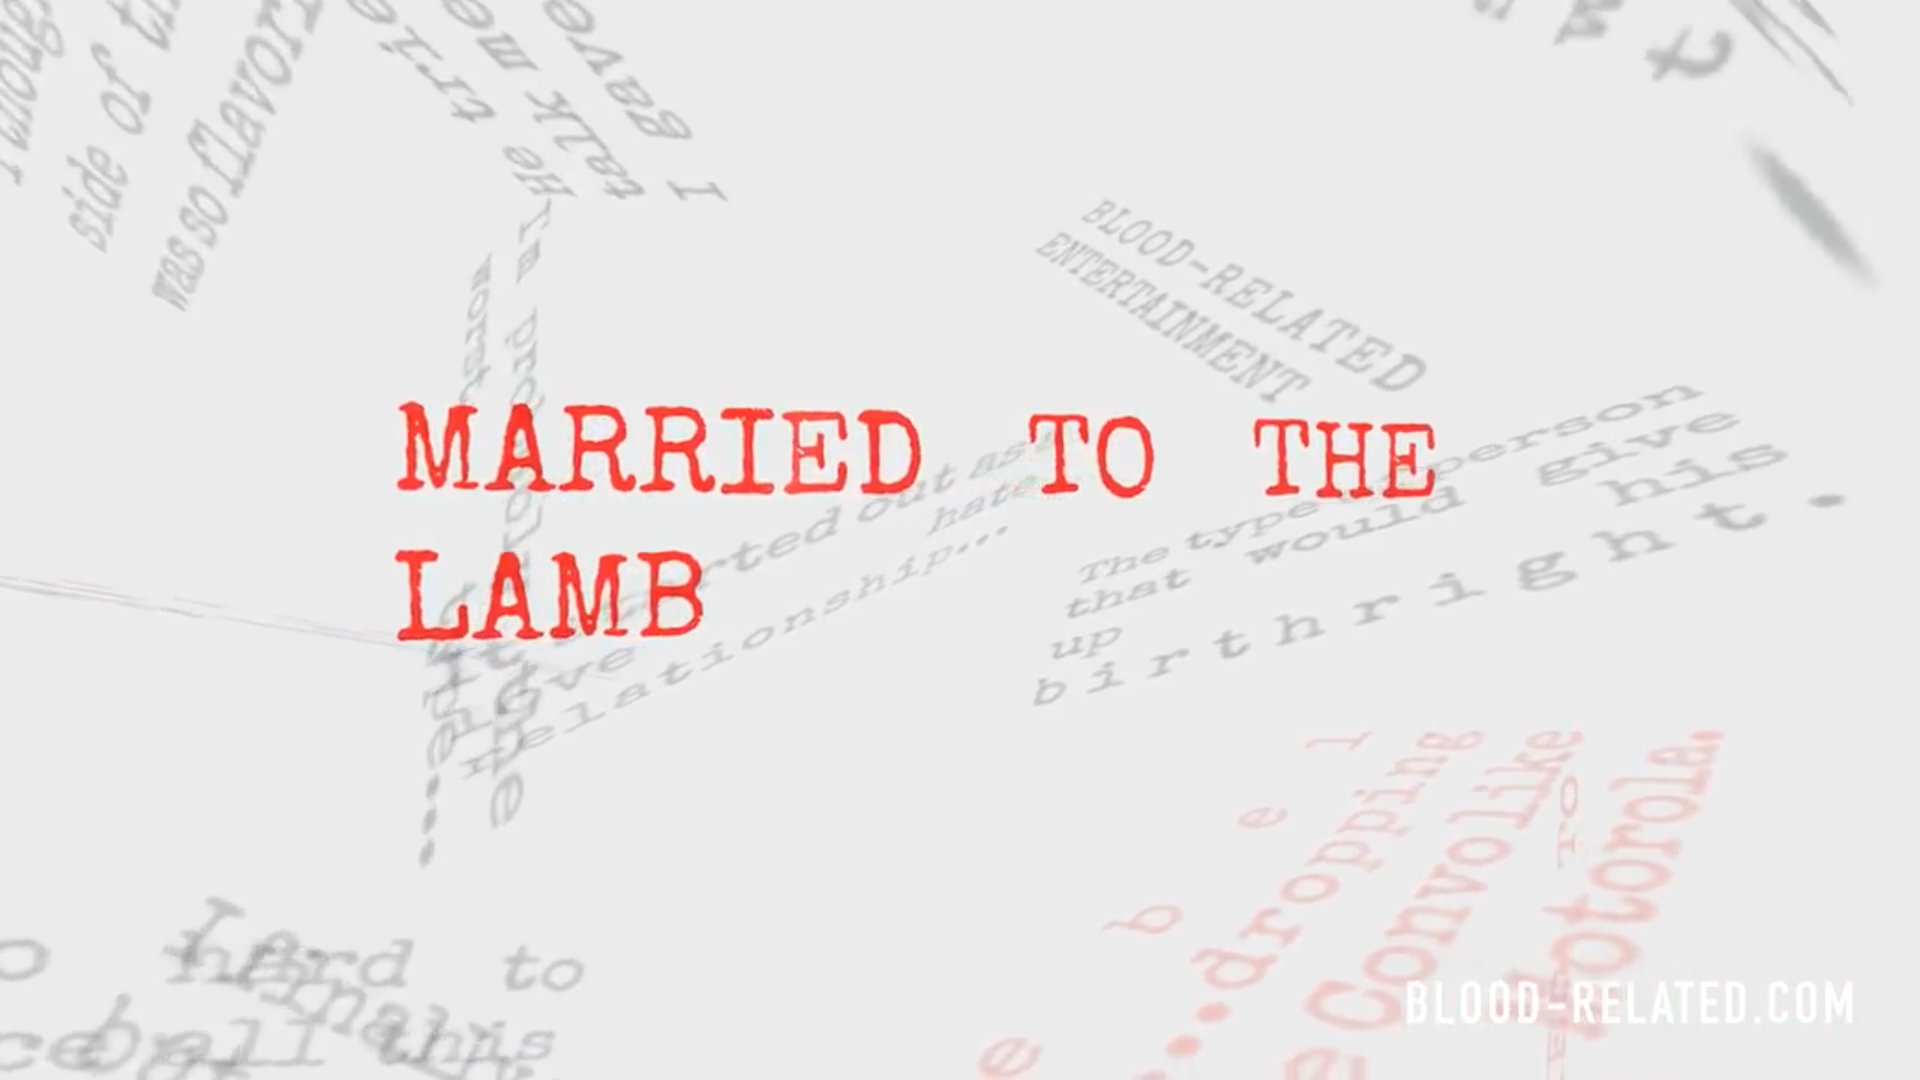 Married to the Lamb by Pacaso Ramirez [Lyric Video]